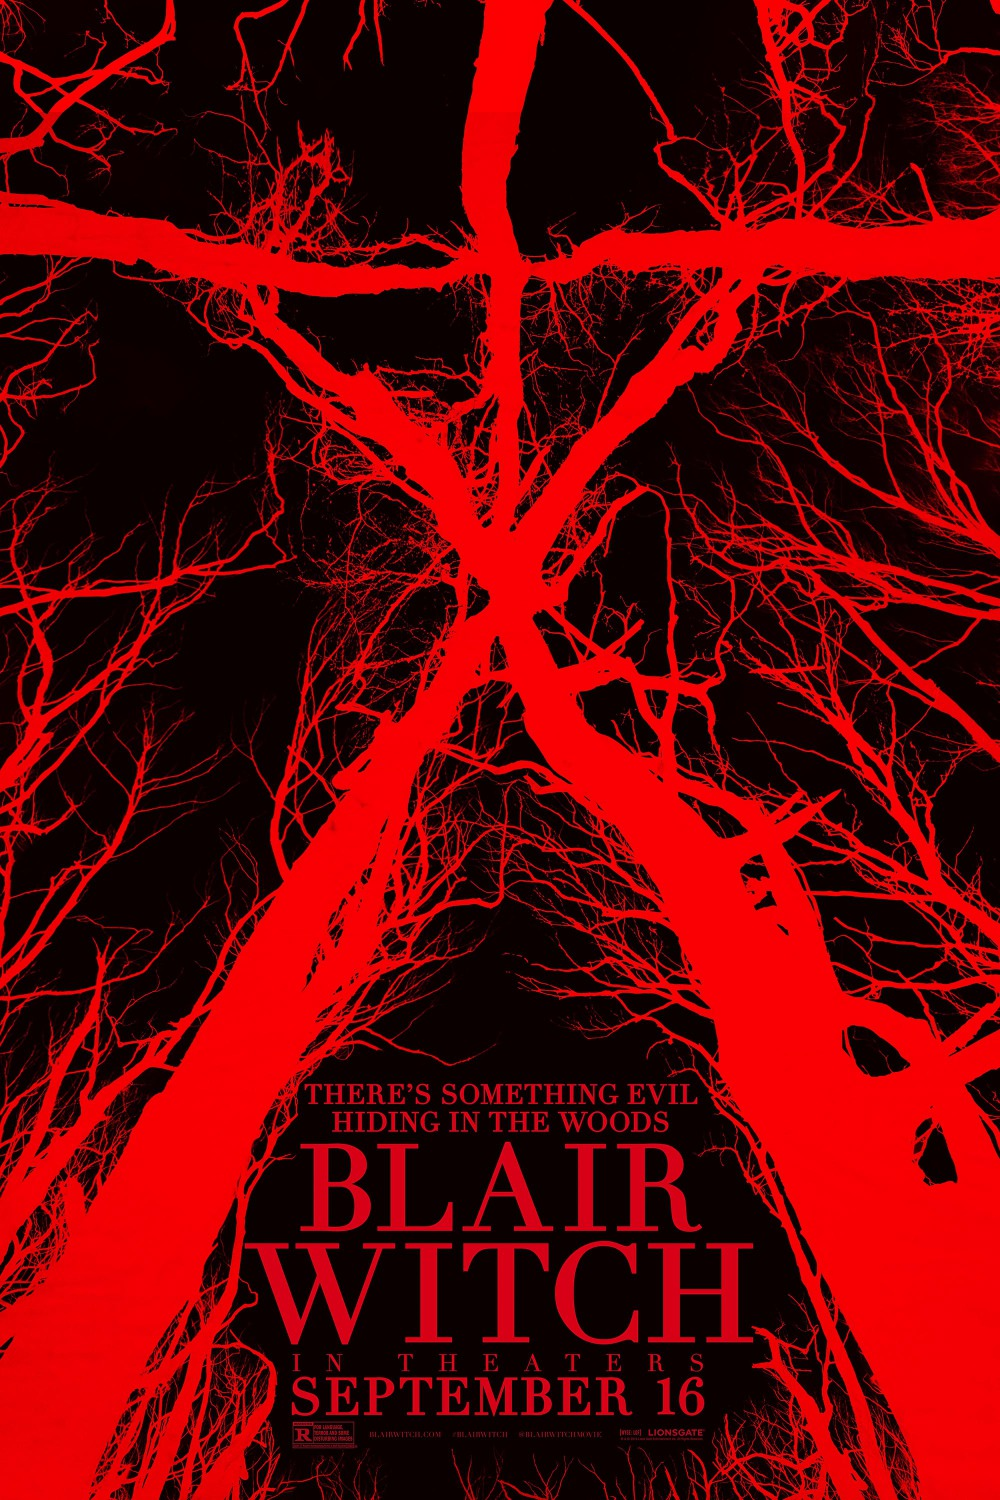 blair witch project movie It's been 20 years since james's sister and her two friends vanished into the black hills forest in maryland while researching the legend of the blair witch, leaving a trail of theories and suspicions in their wake.